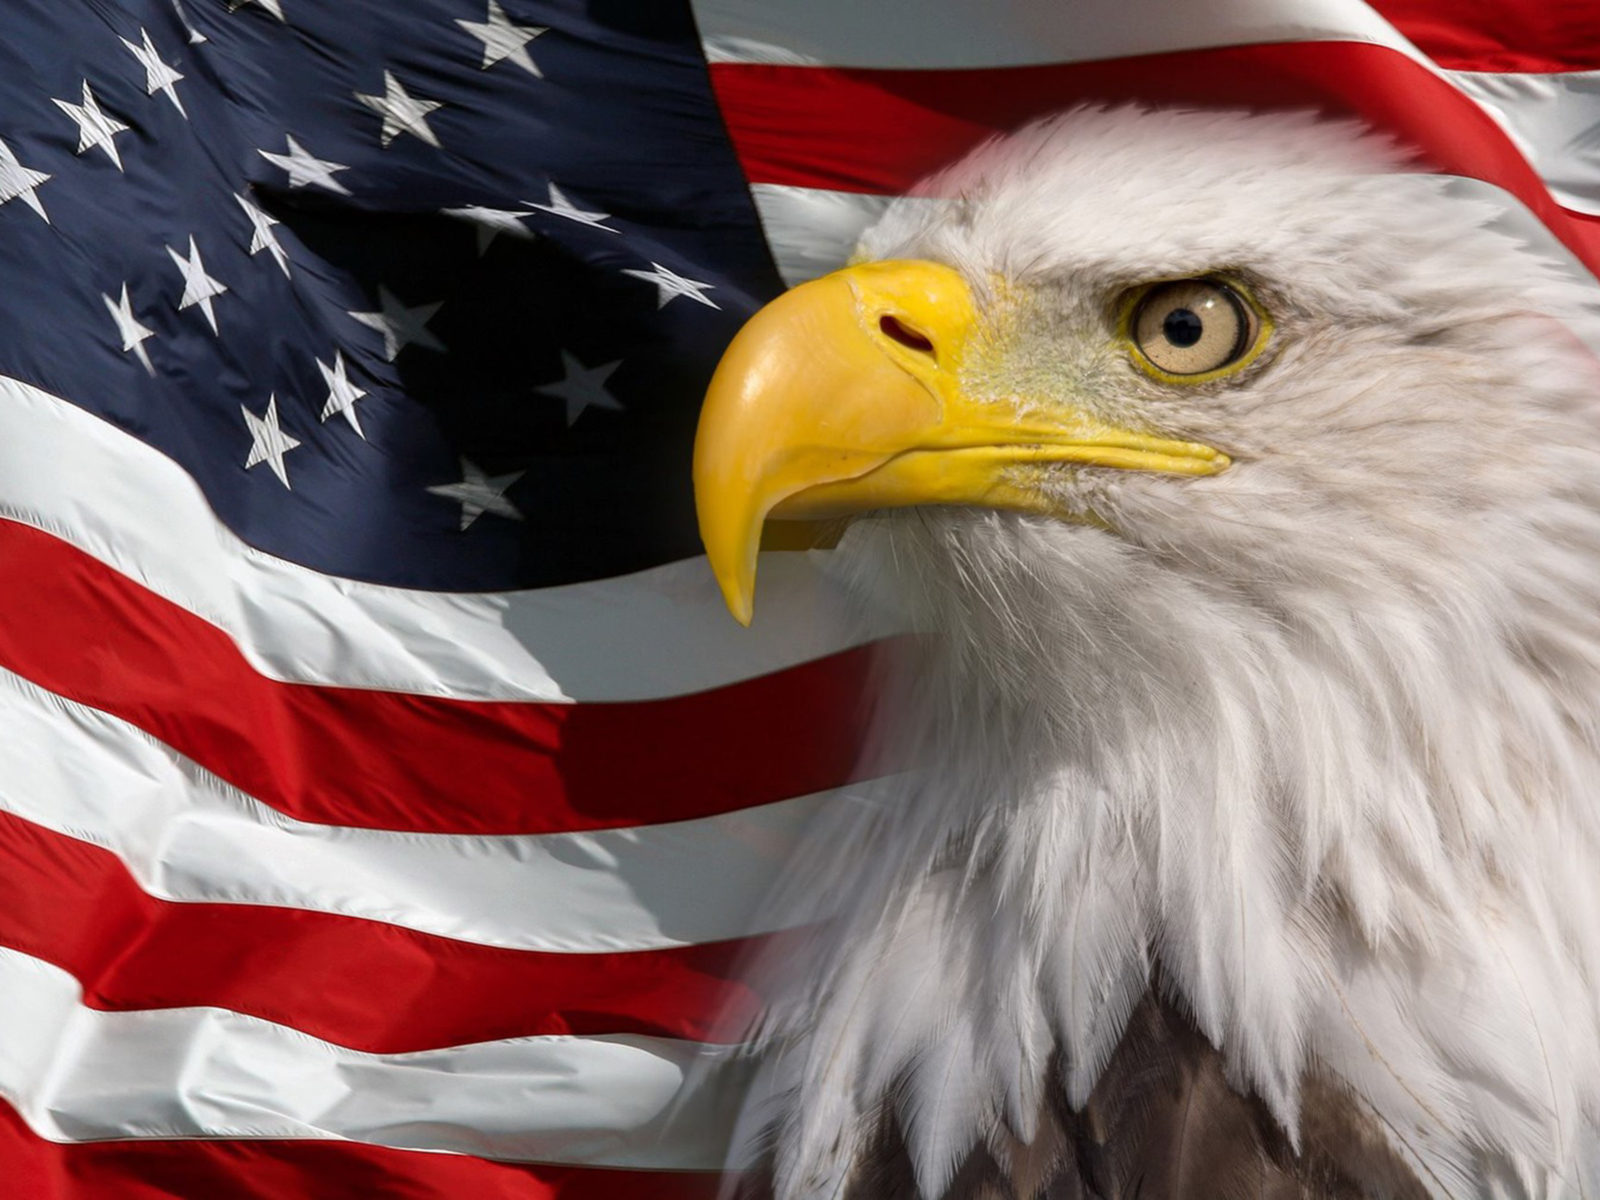 American Flag Wallpaper Iphone X American Flag And Bald Eagle Symbol Of America Picture Hd